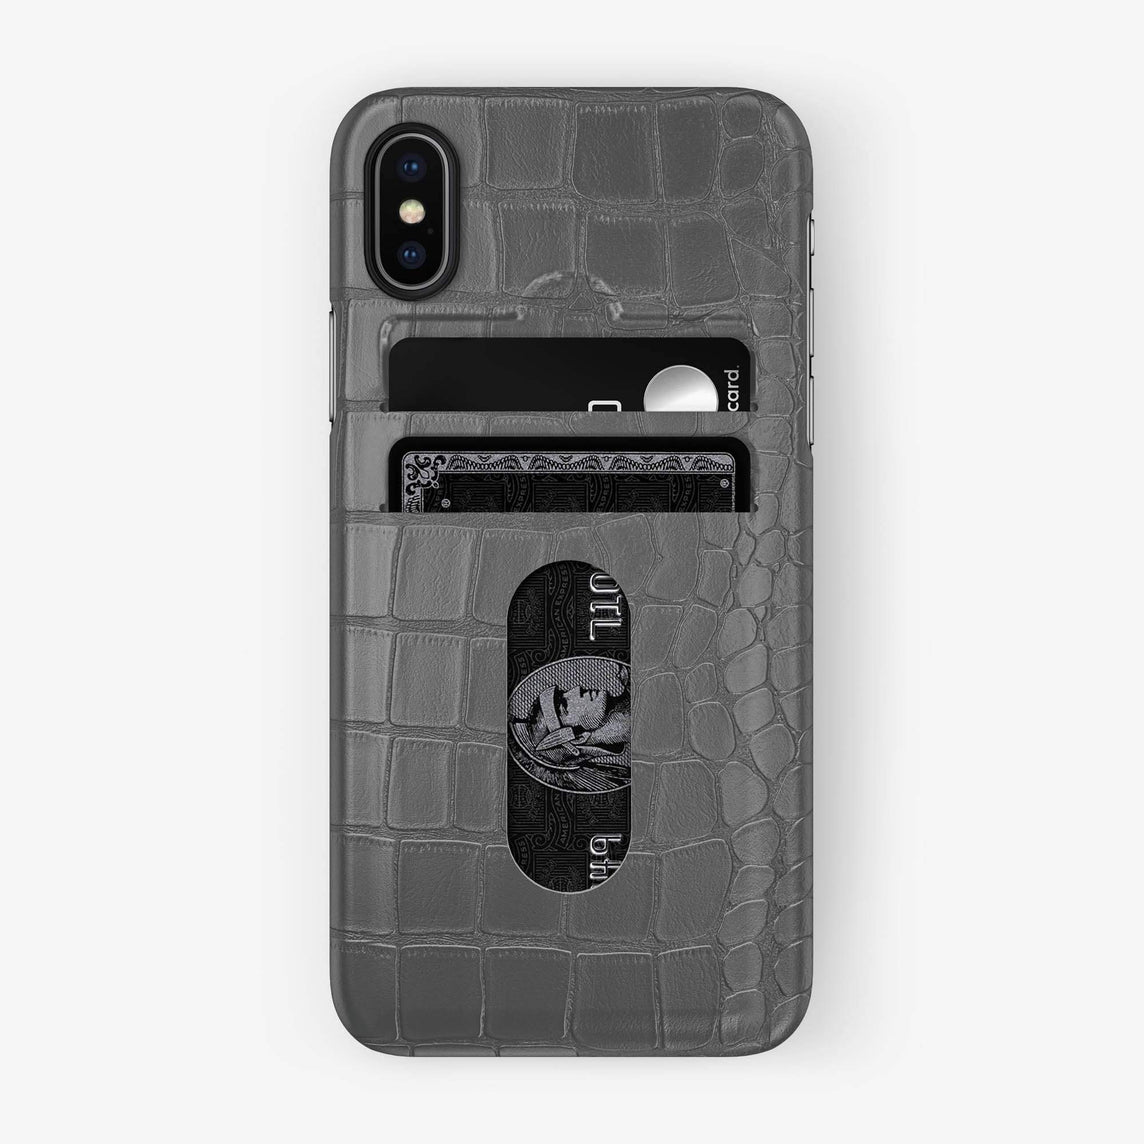 Alligator Card Holder Case iPhone Xs Max | Grey - Black - Hadoro